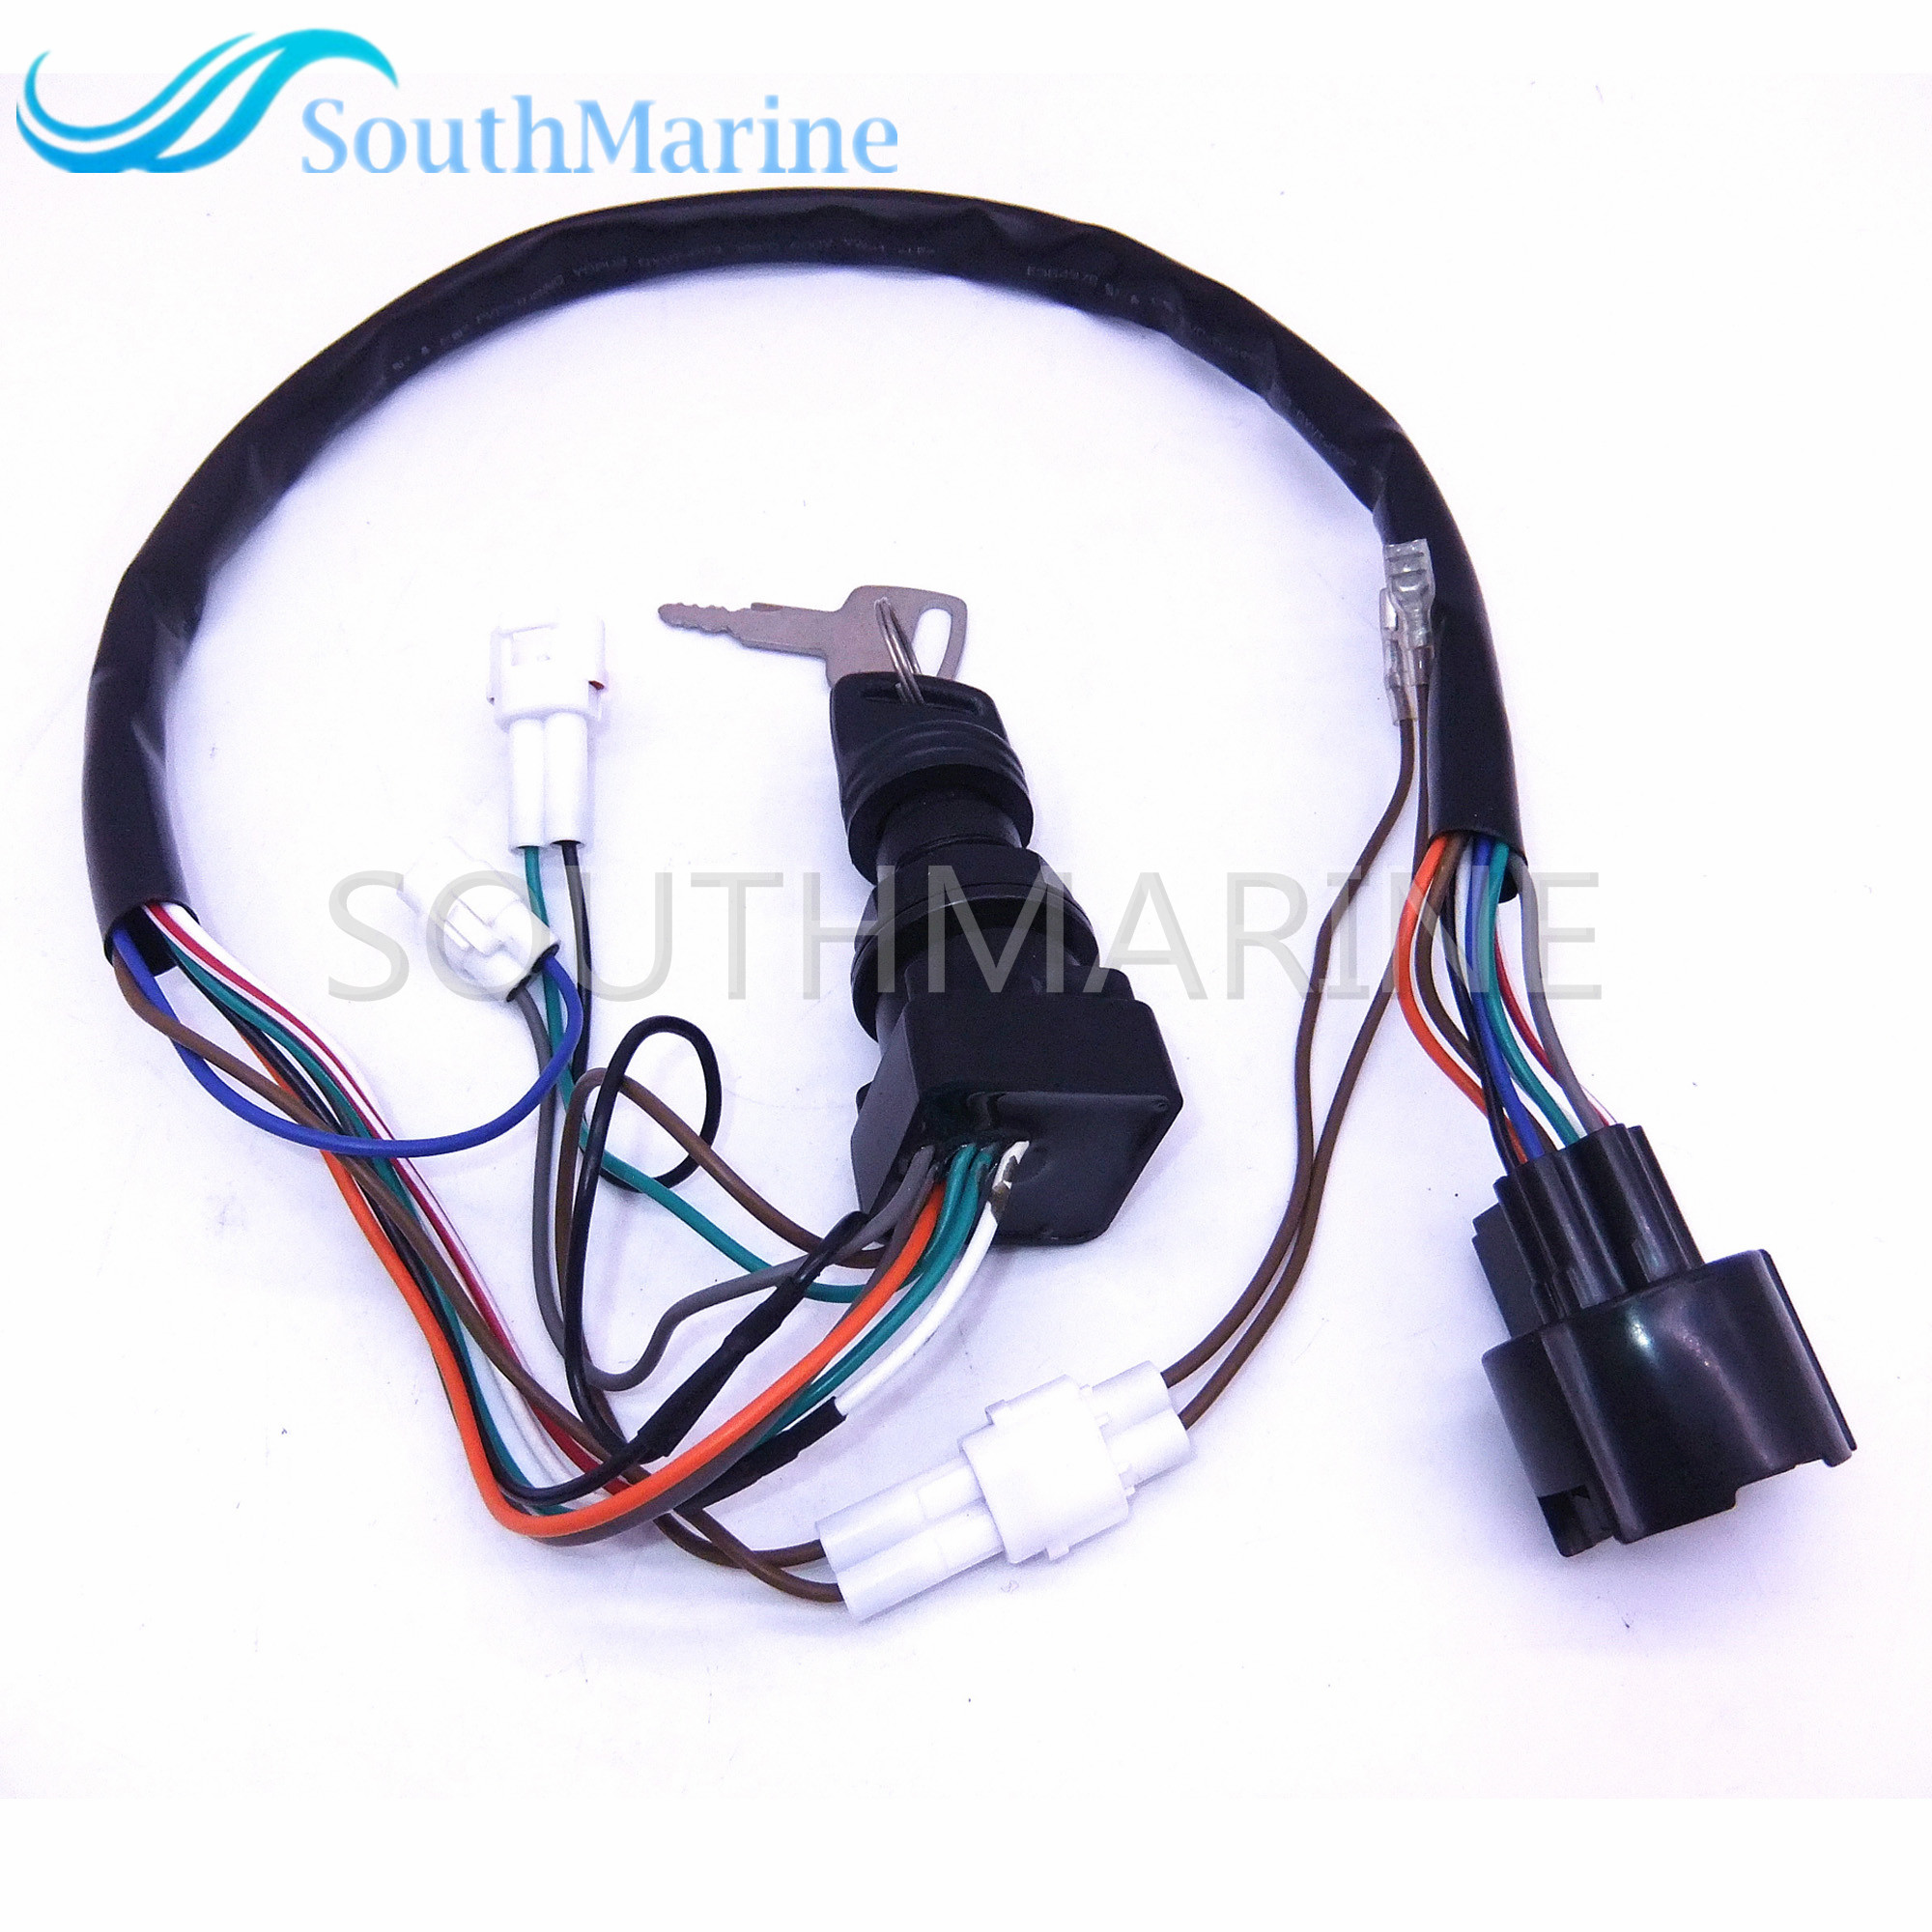 medium resolution of 37110 93j00 37110 93j01 boat motor ignition switch assembly for suzuki outboard motor